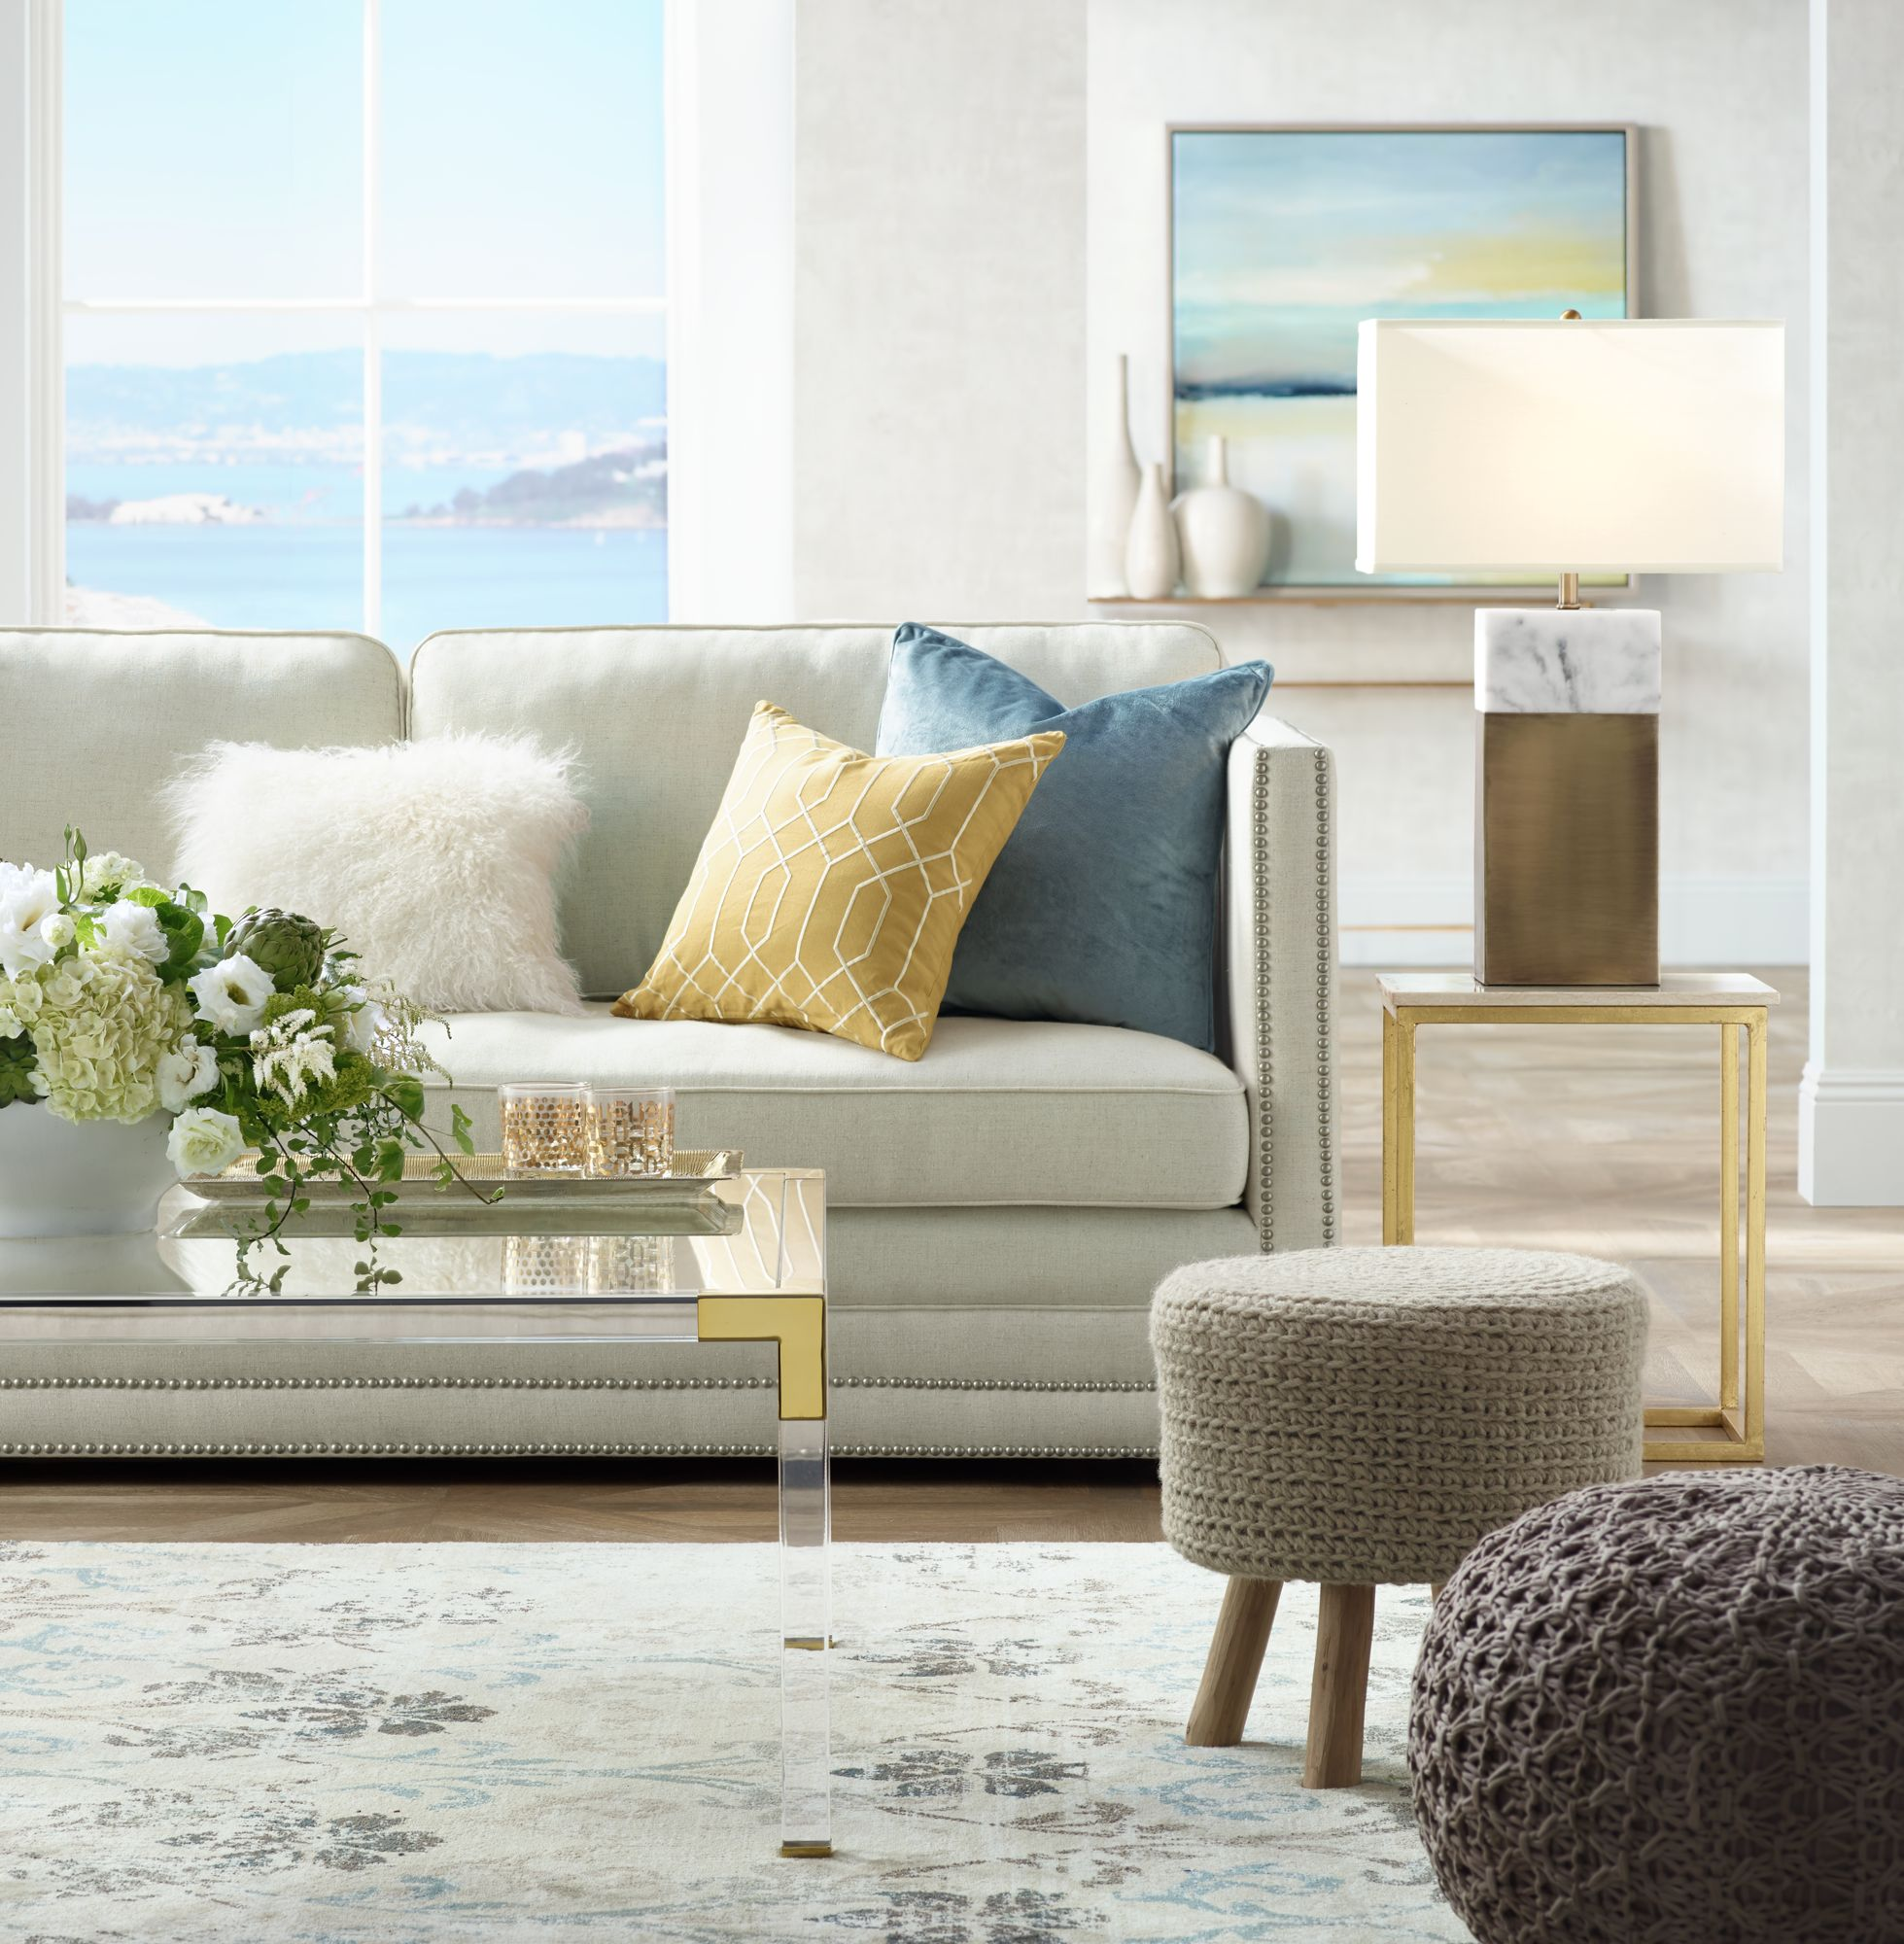 Use Pouf Ottomans To Add Texture And Alternate Seating To A Living Room.